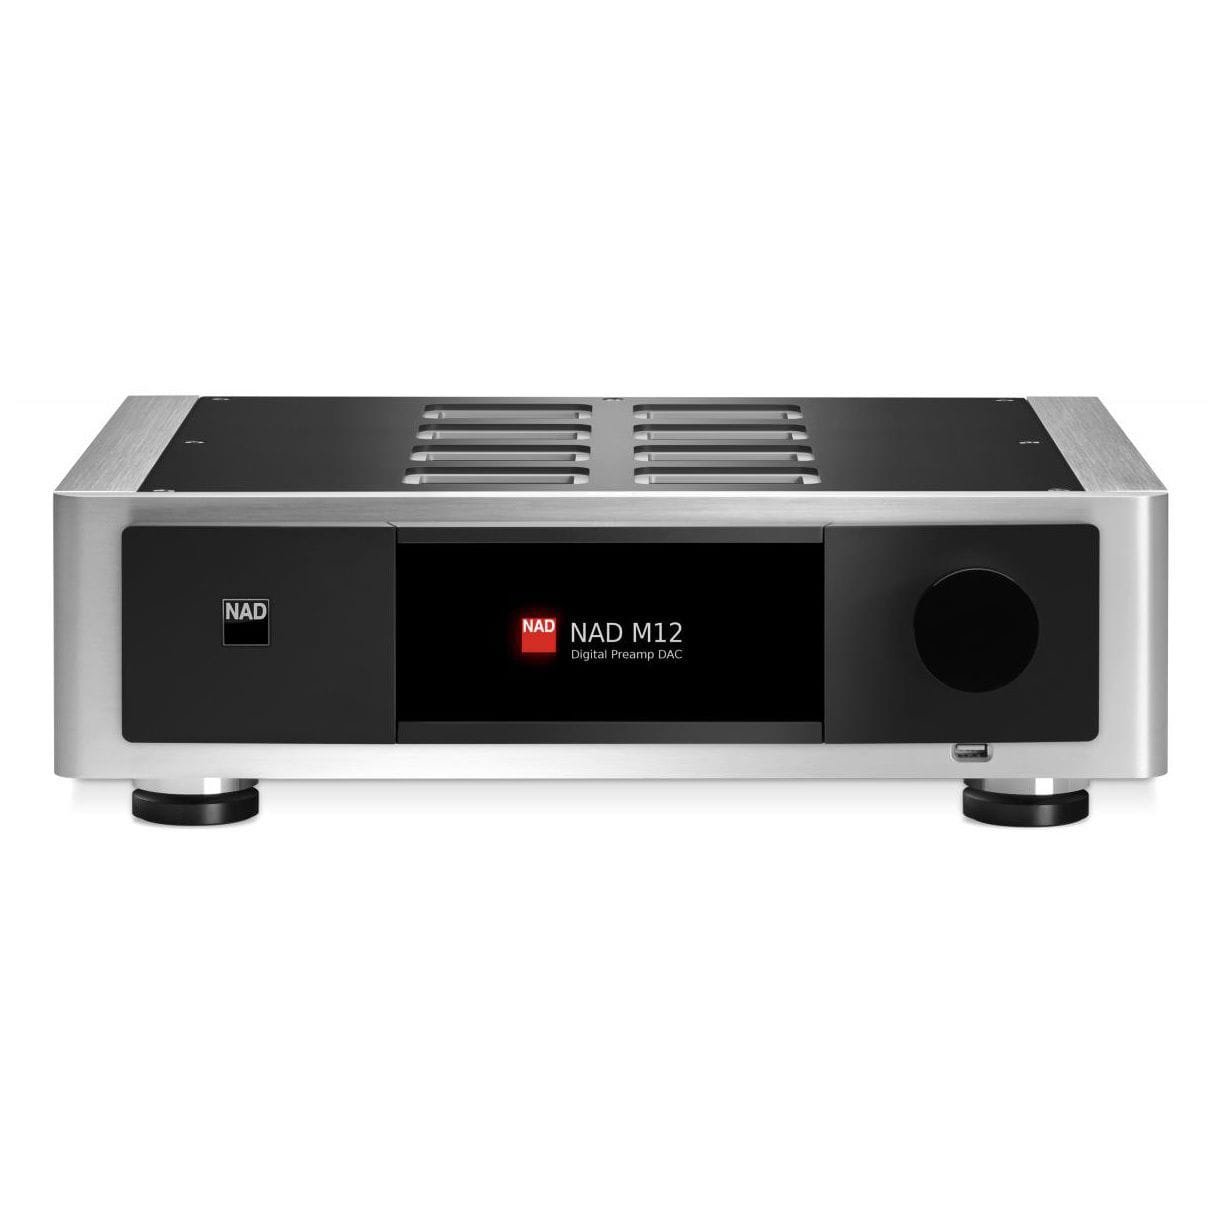 NAD Masters Series M12 Digital Pre-Amplifer DAC